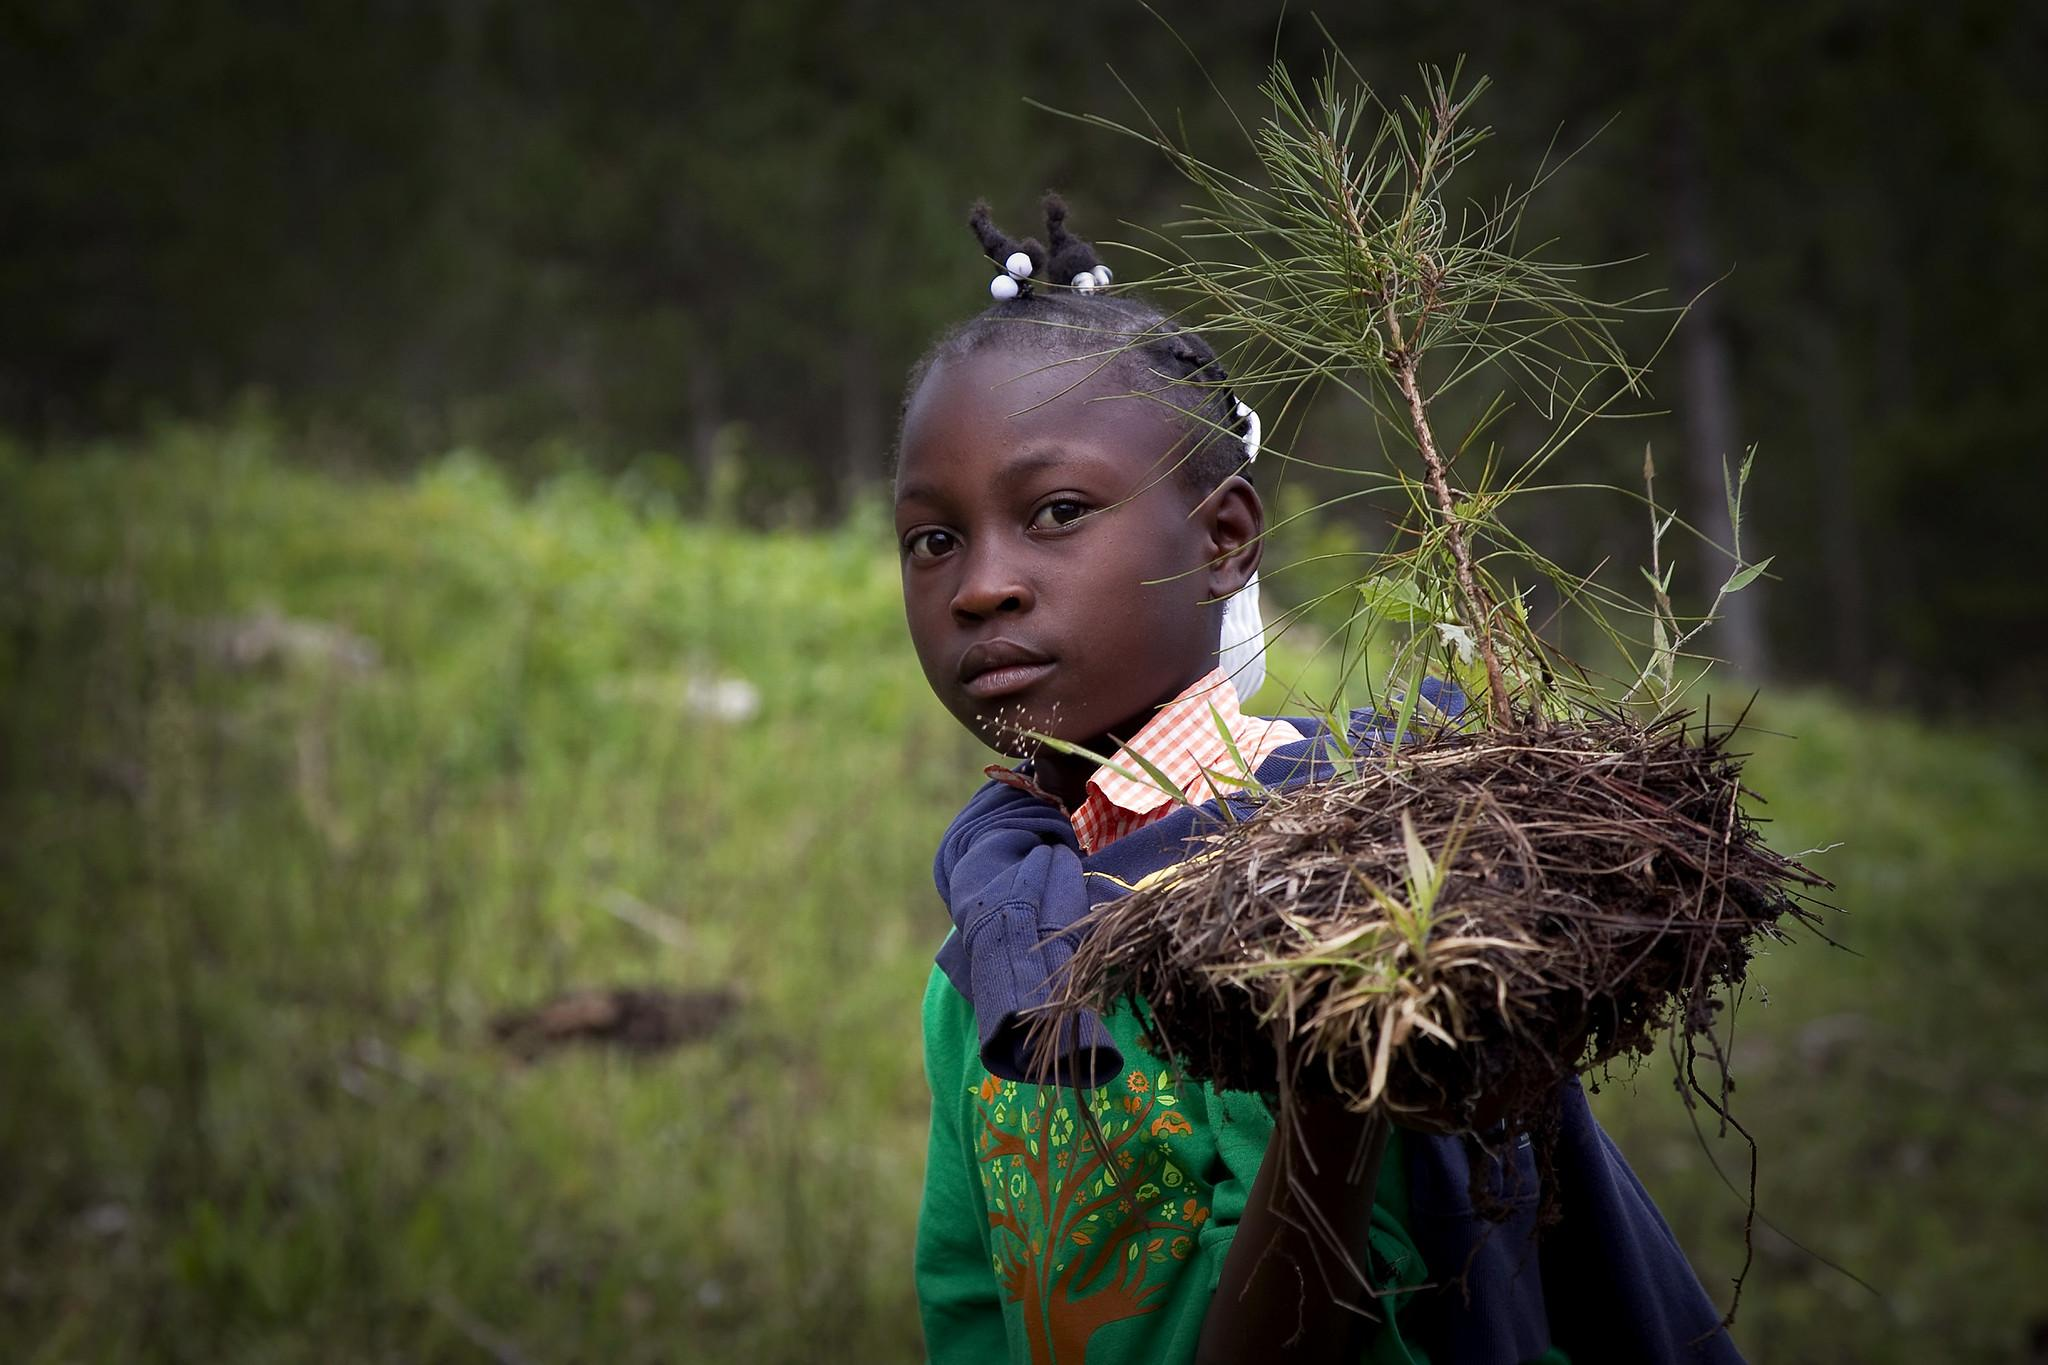 The picture of Haitian students breathe new life into depleted pine forest.